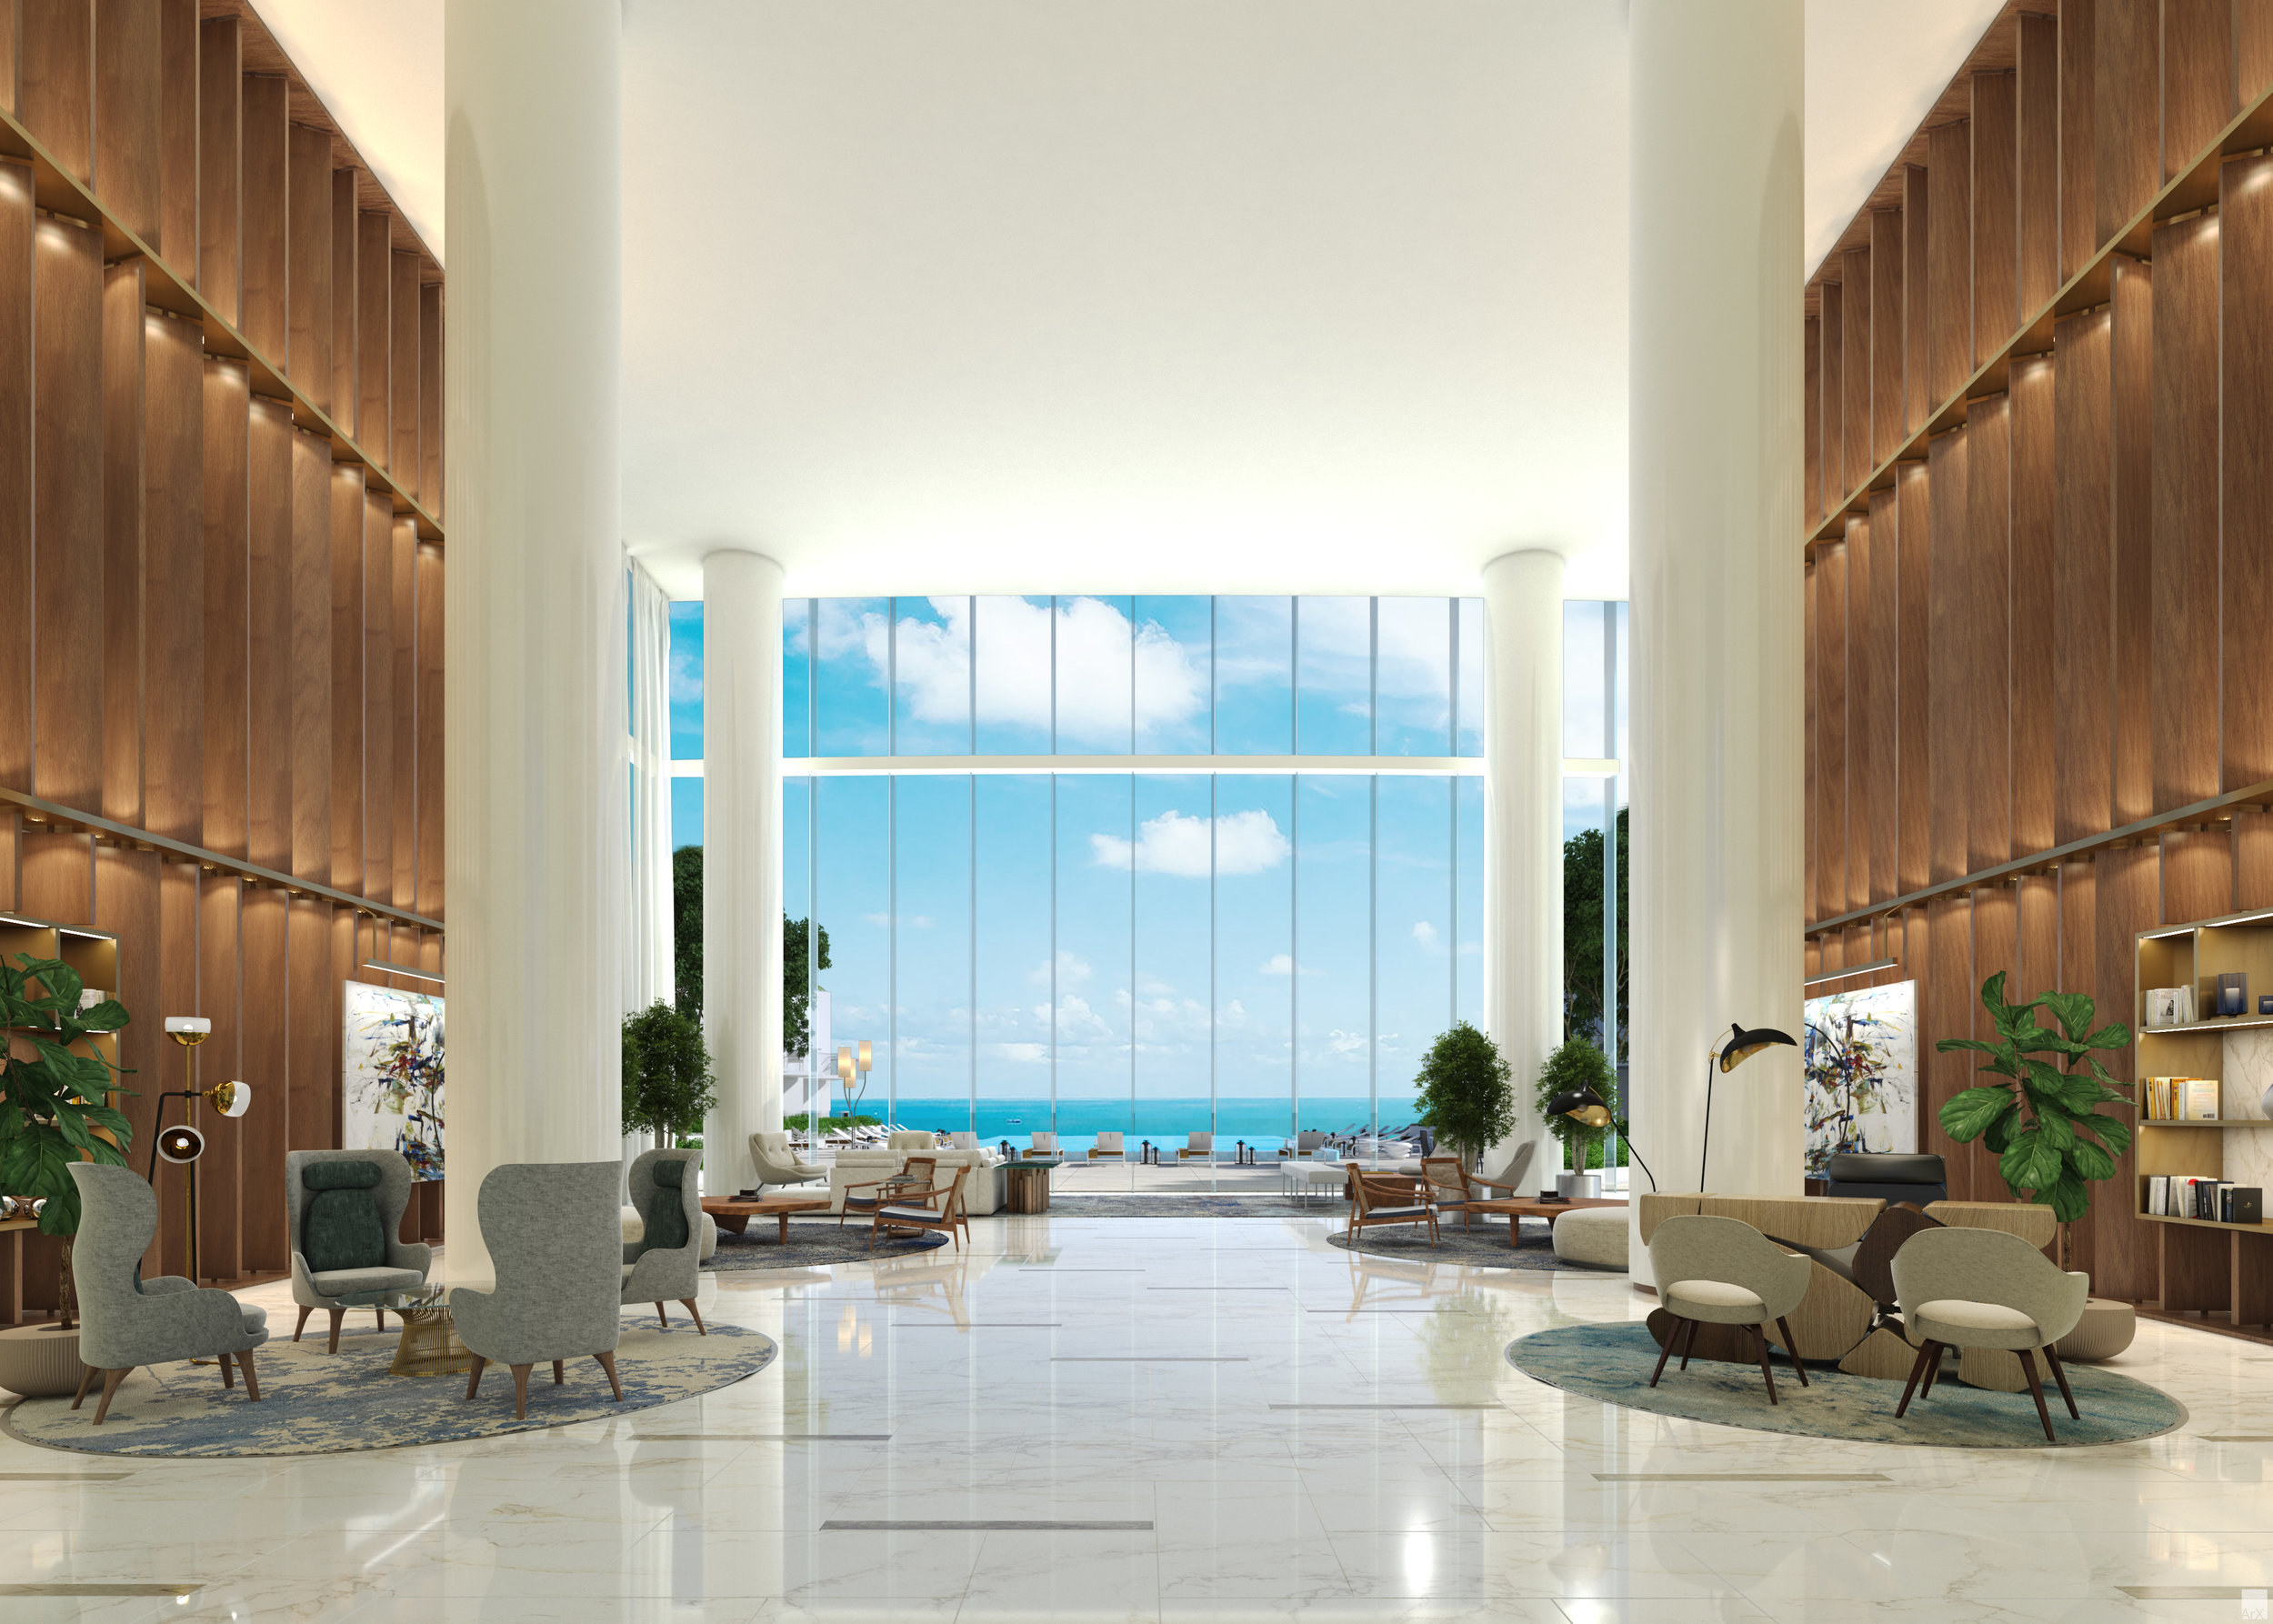 Jeff Soffer's Lavish Turnberry Ocean Club Reveals Its Ultra-Luxe Amenities In Sunny Isles Beach